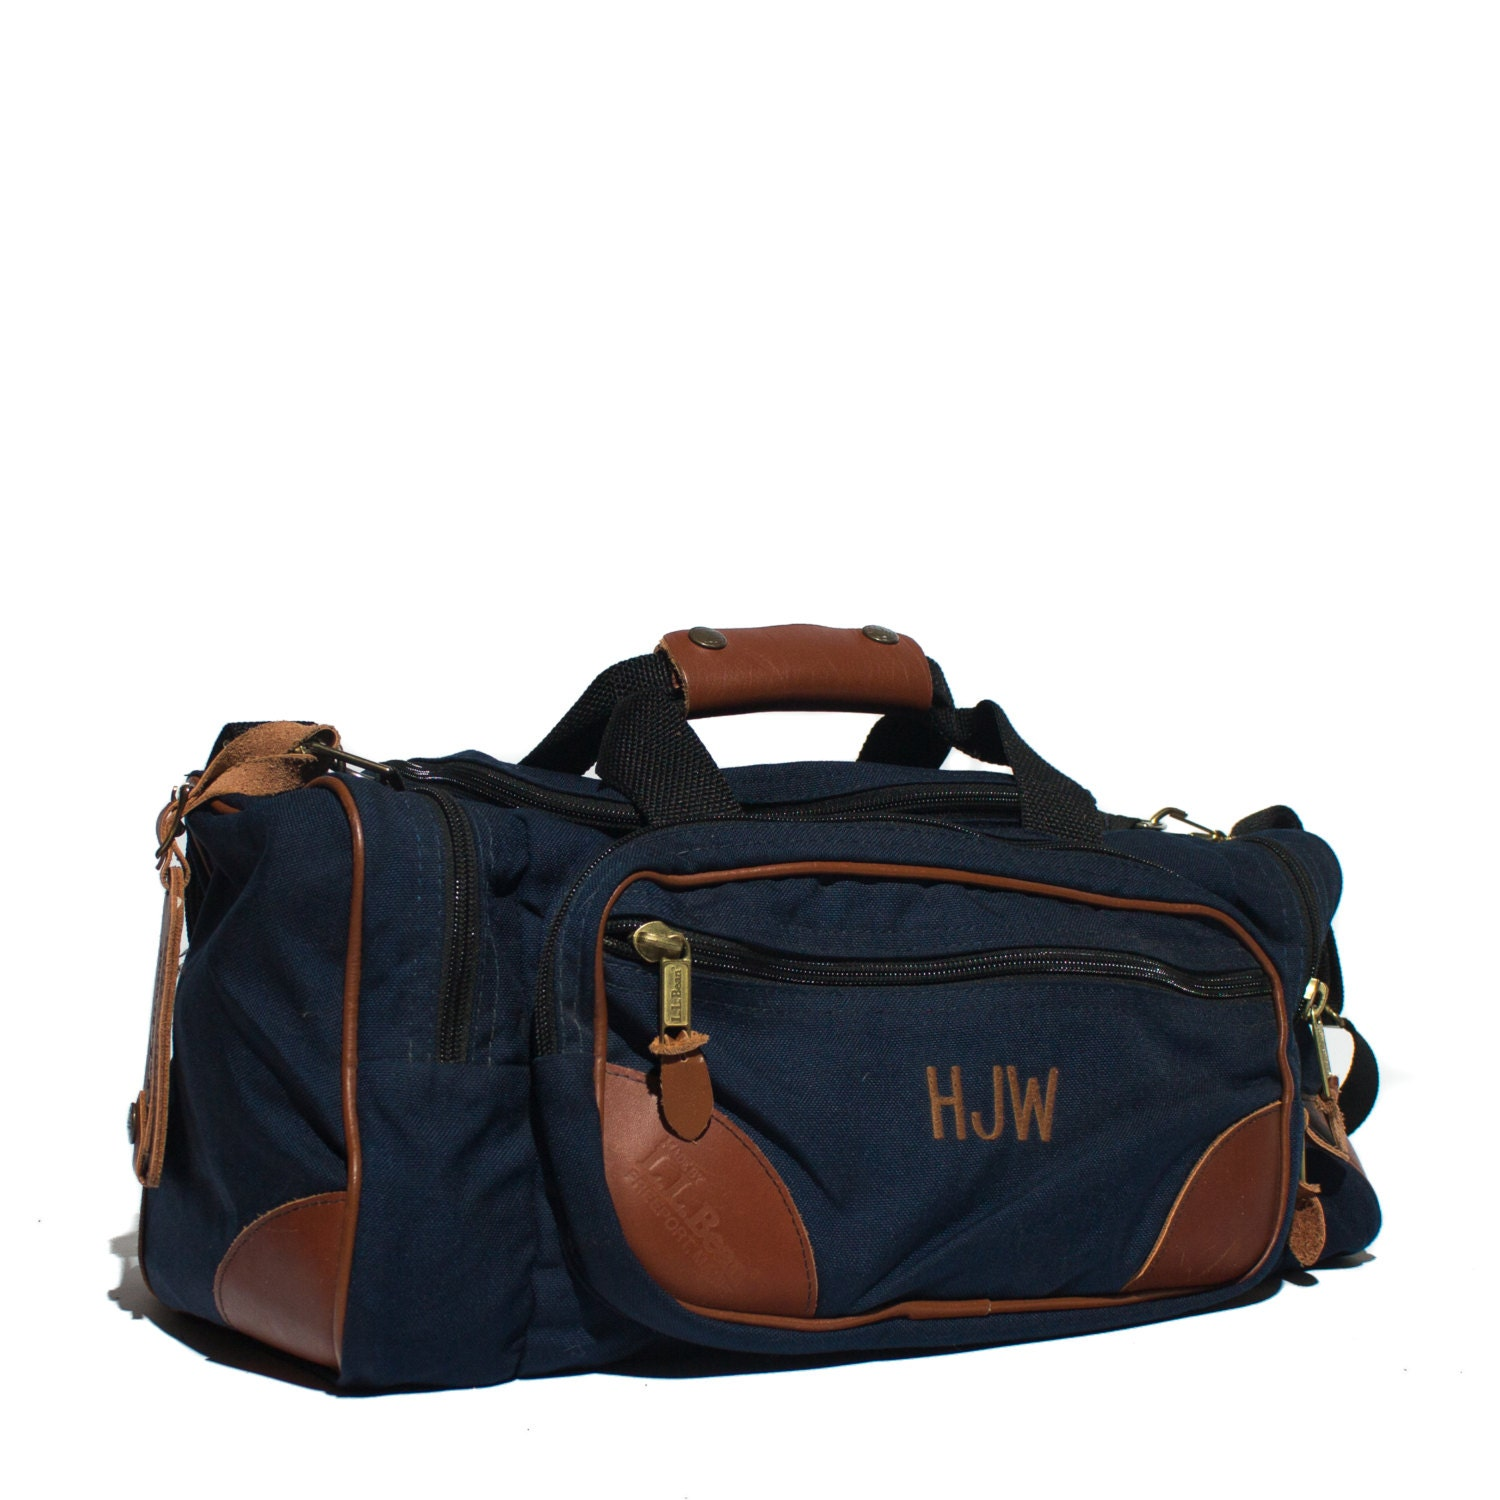 vintage 1980 s ll bean duffle bag navy blue with